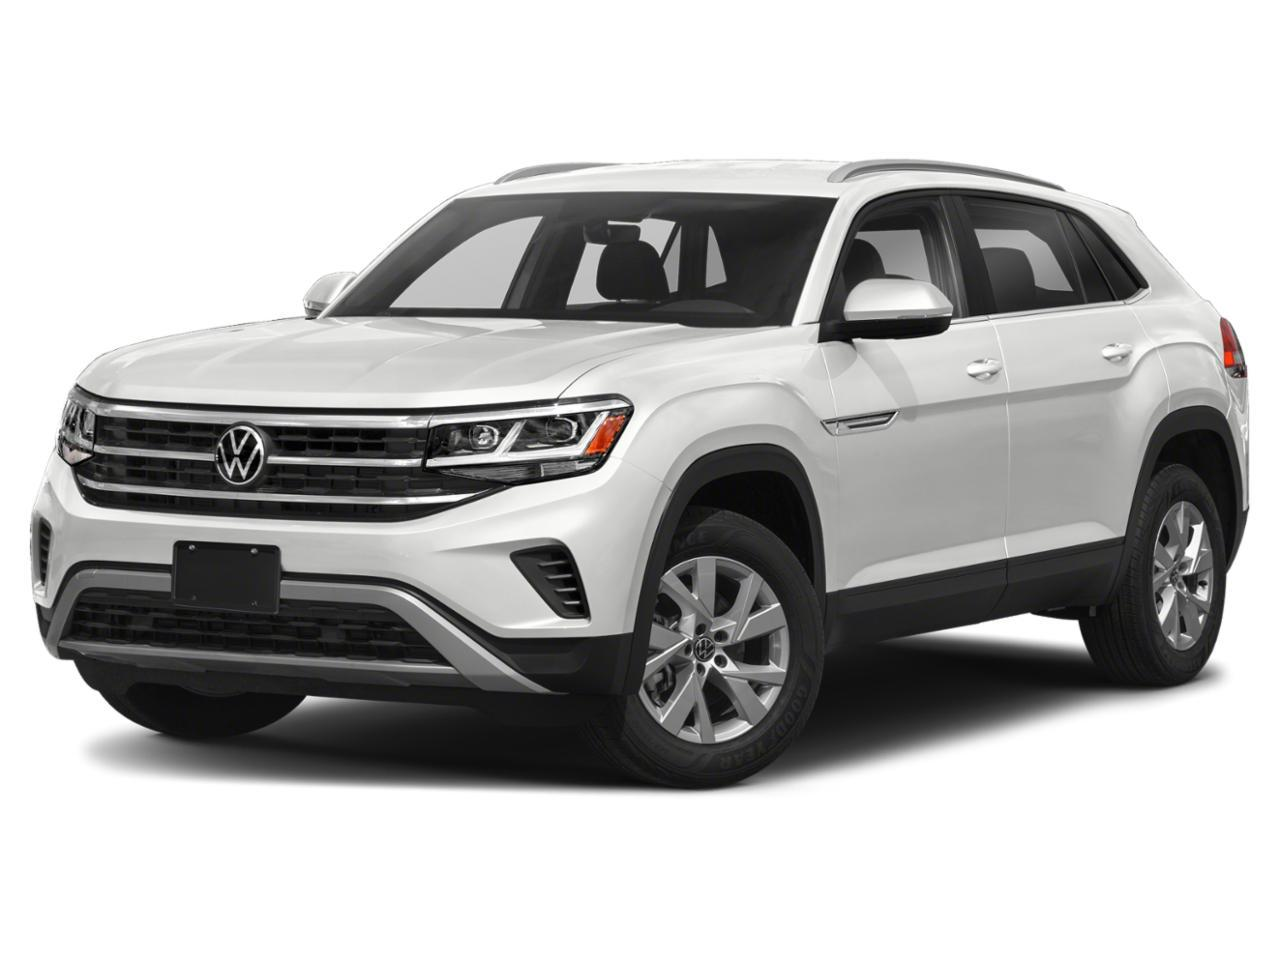 2020 Volkswagen Atlas Cross Sport Vehicle Photo in Oshkosh, WI 54904